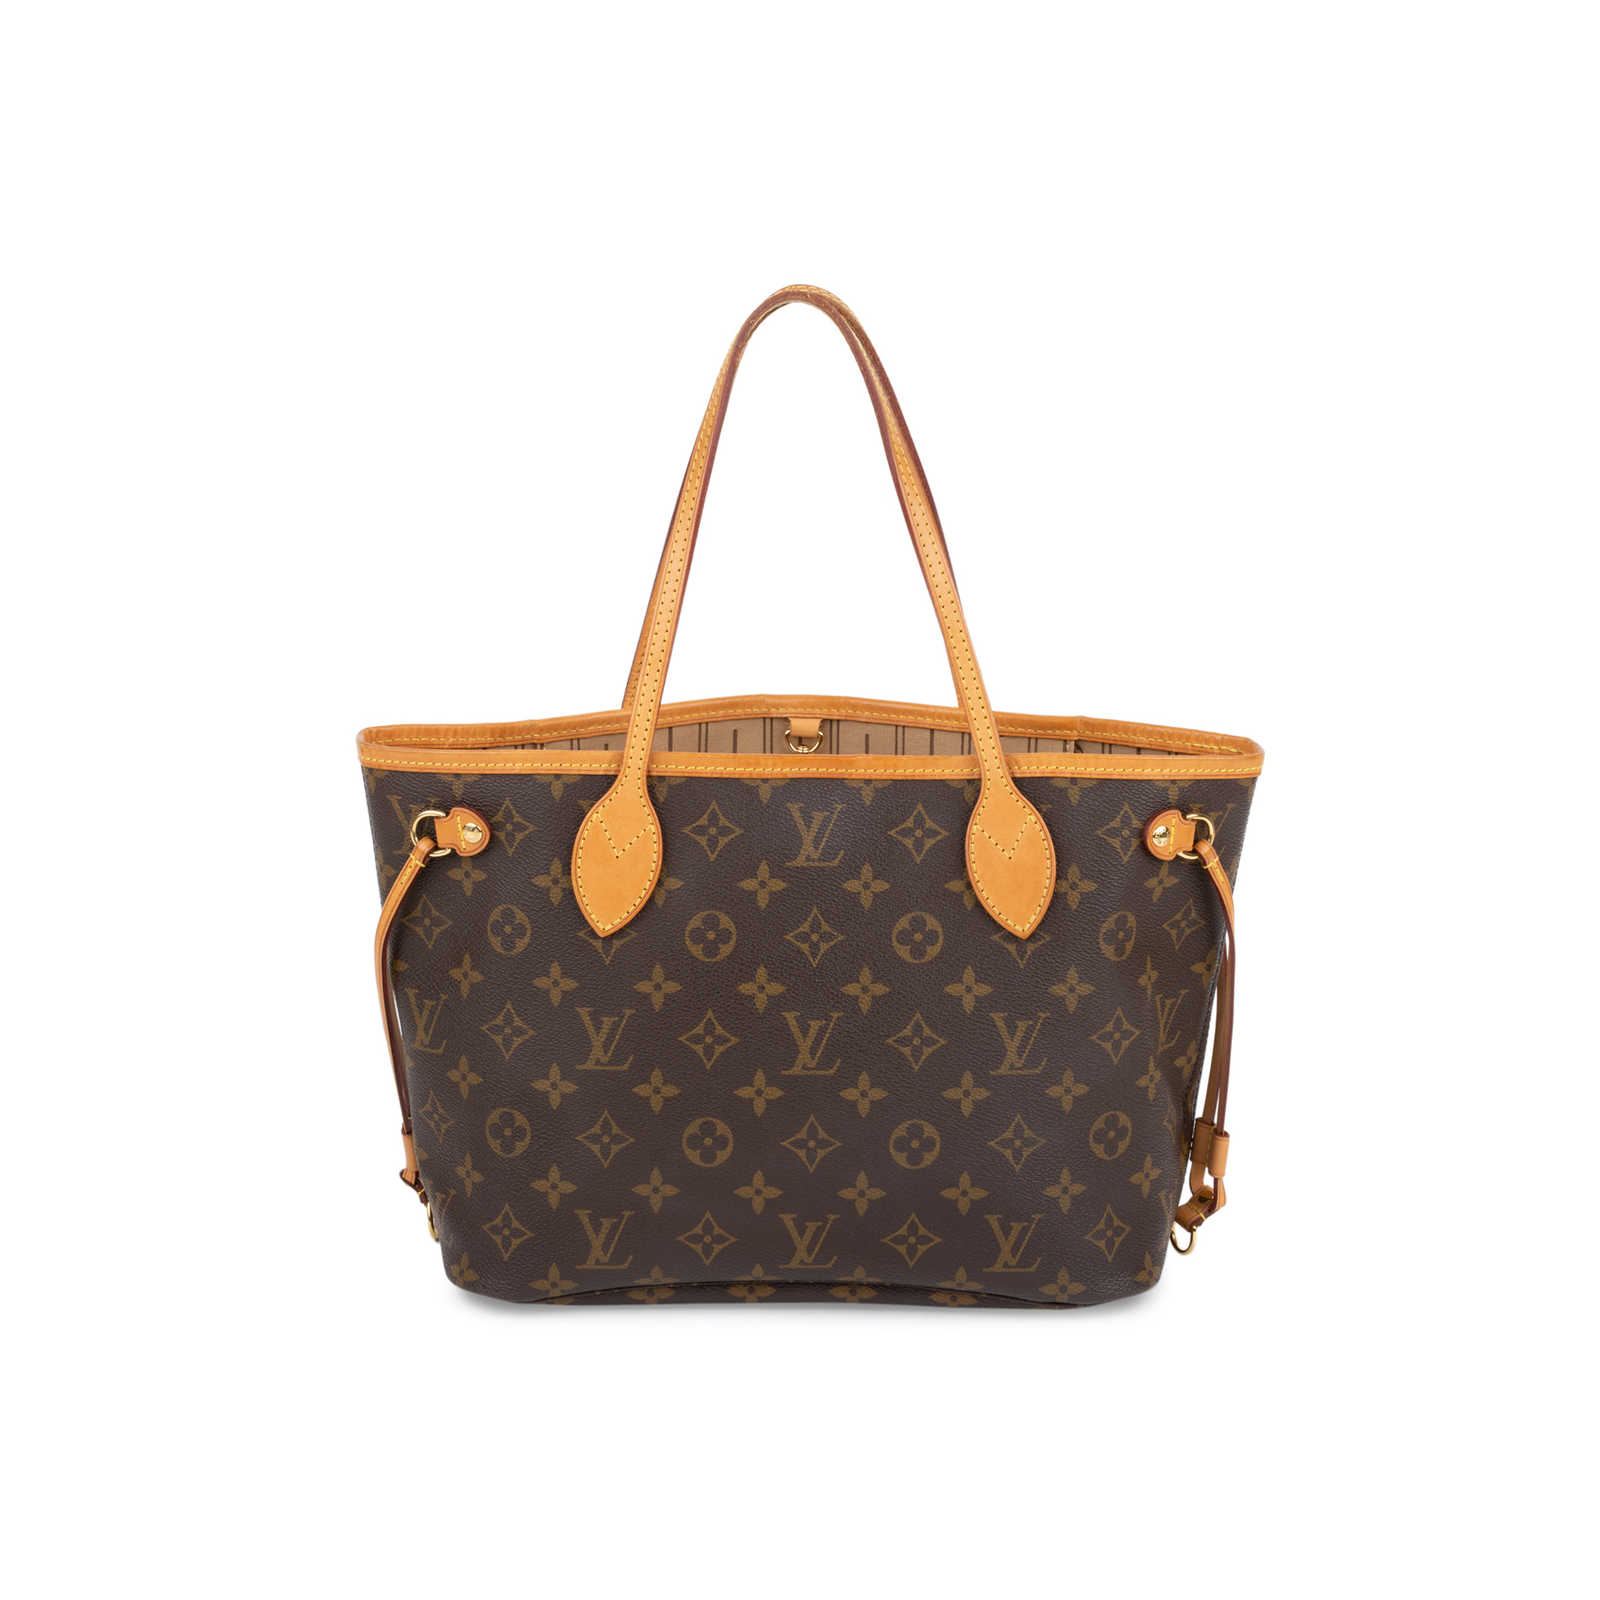 1f40f9e1a580 Tap to expand · Authentic Second Hand Louis Vuitton Monogram Neverfull PM  (PSS-581-00002) ...